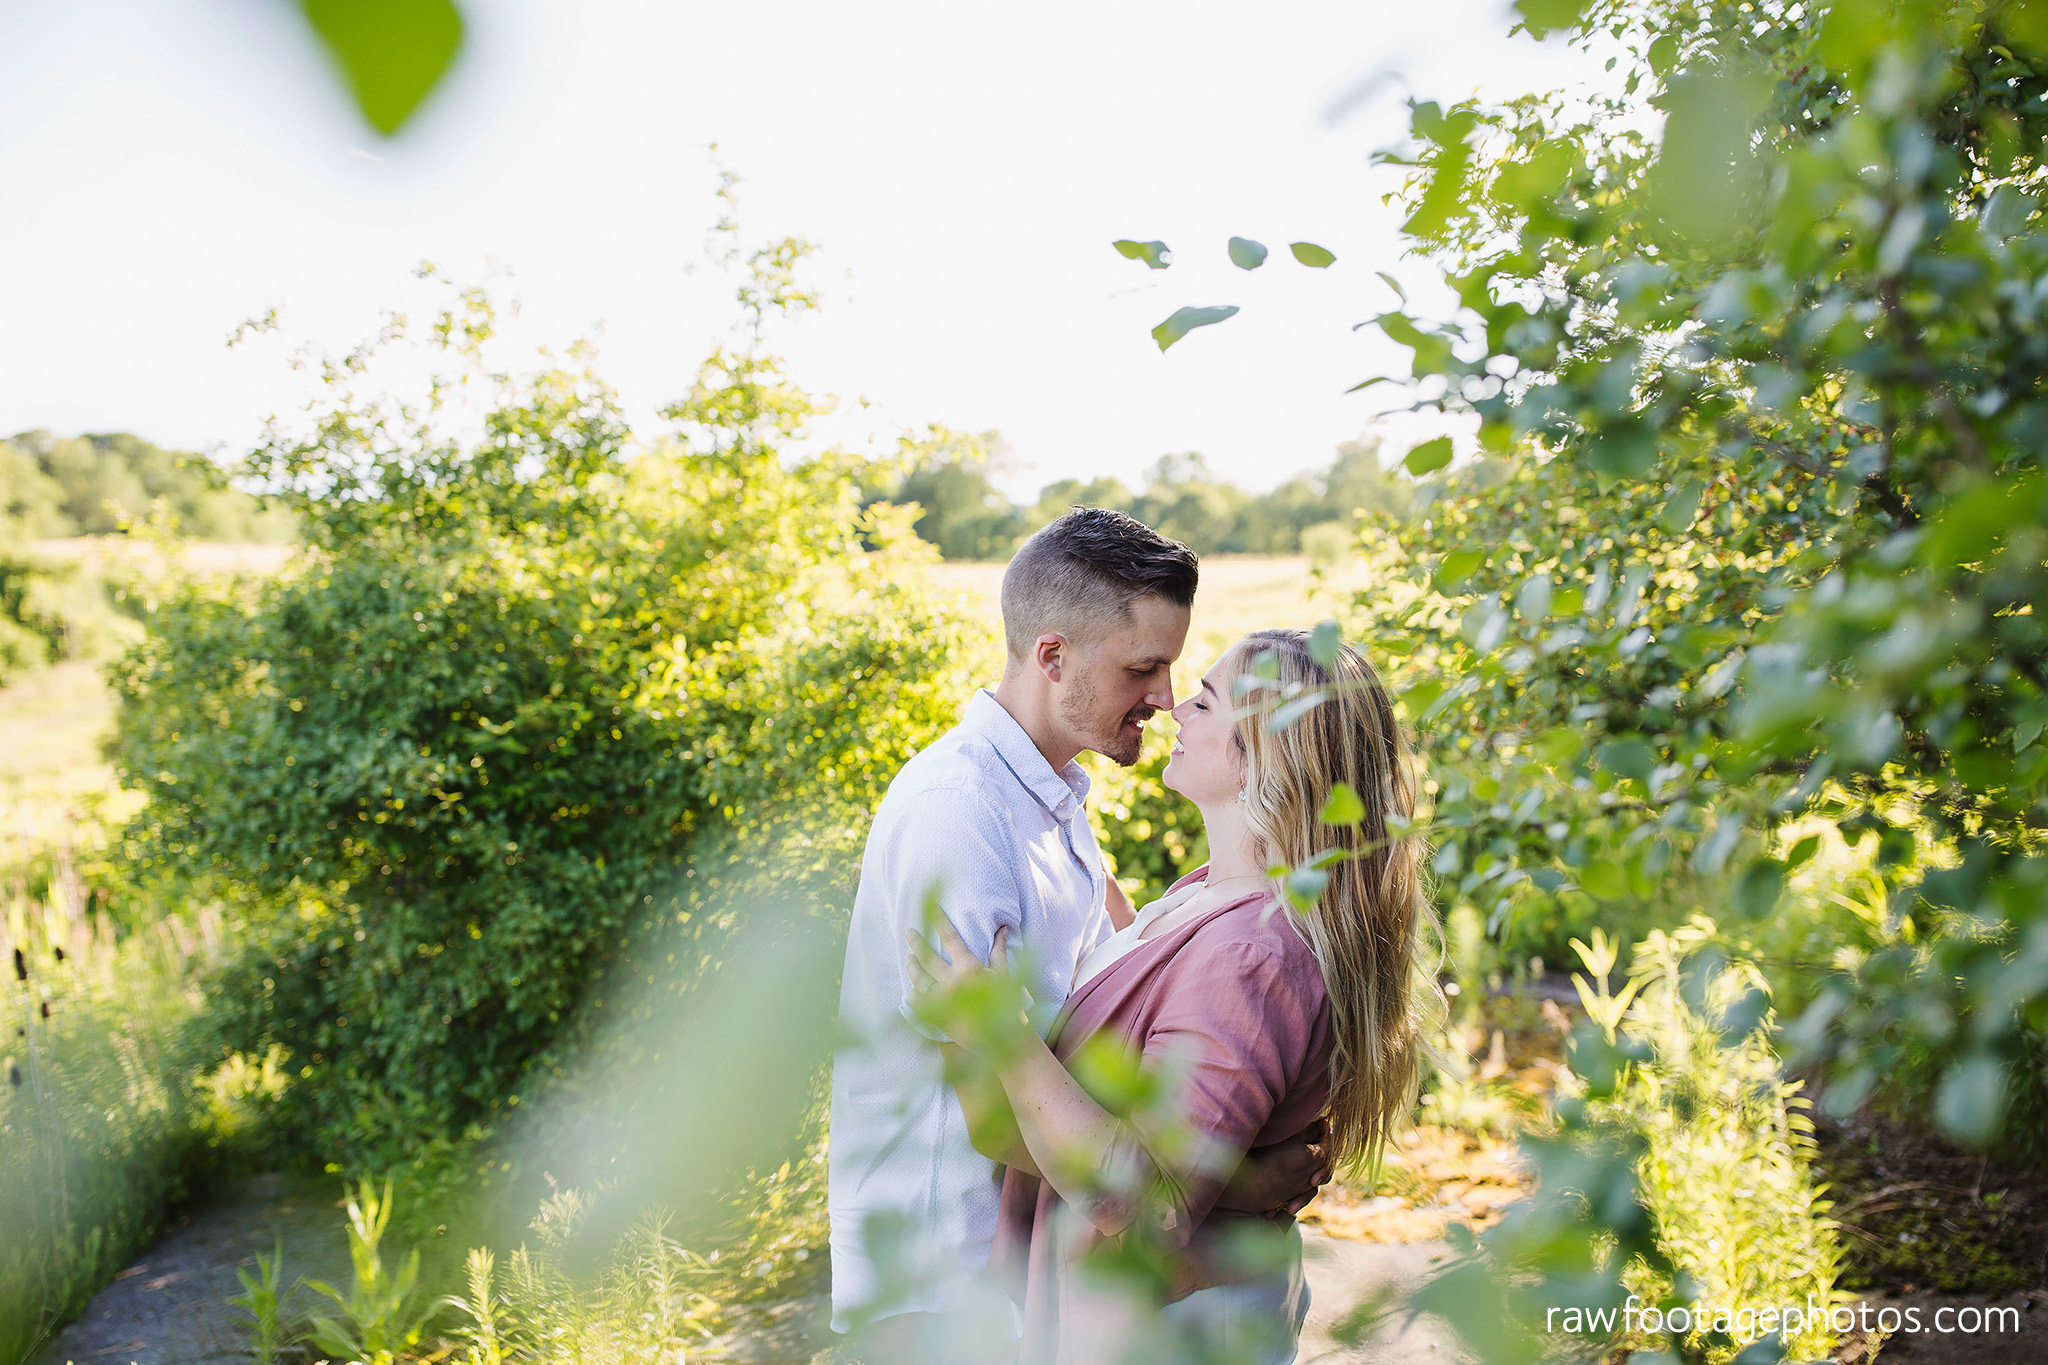 london_ontario_wedding_photographer-raw_footage_photography-mentoring-workshop-golden_hour-engagement_session005.jpg